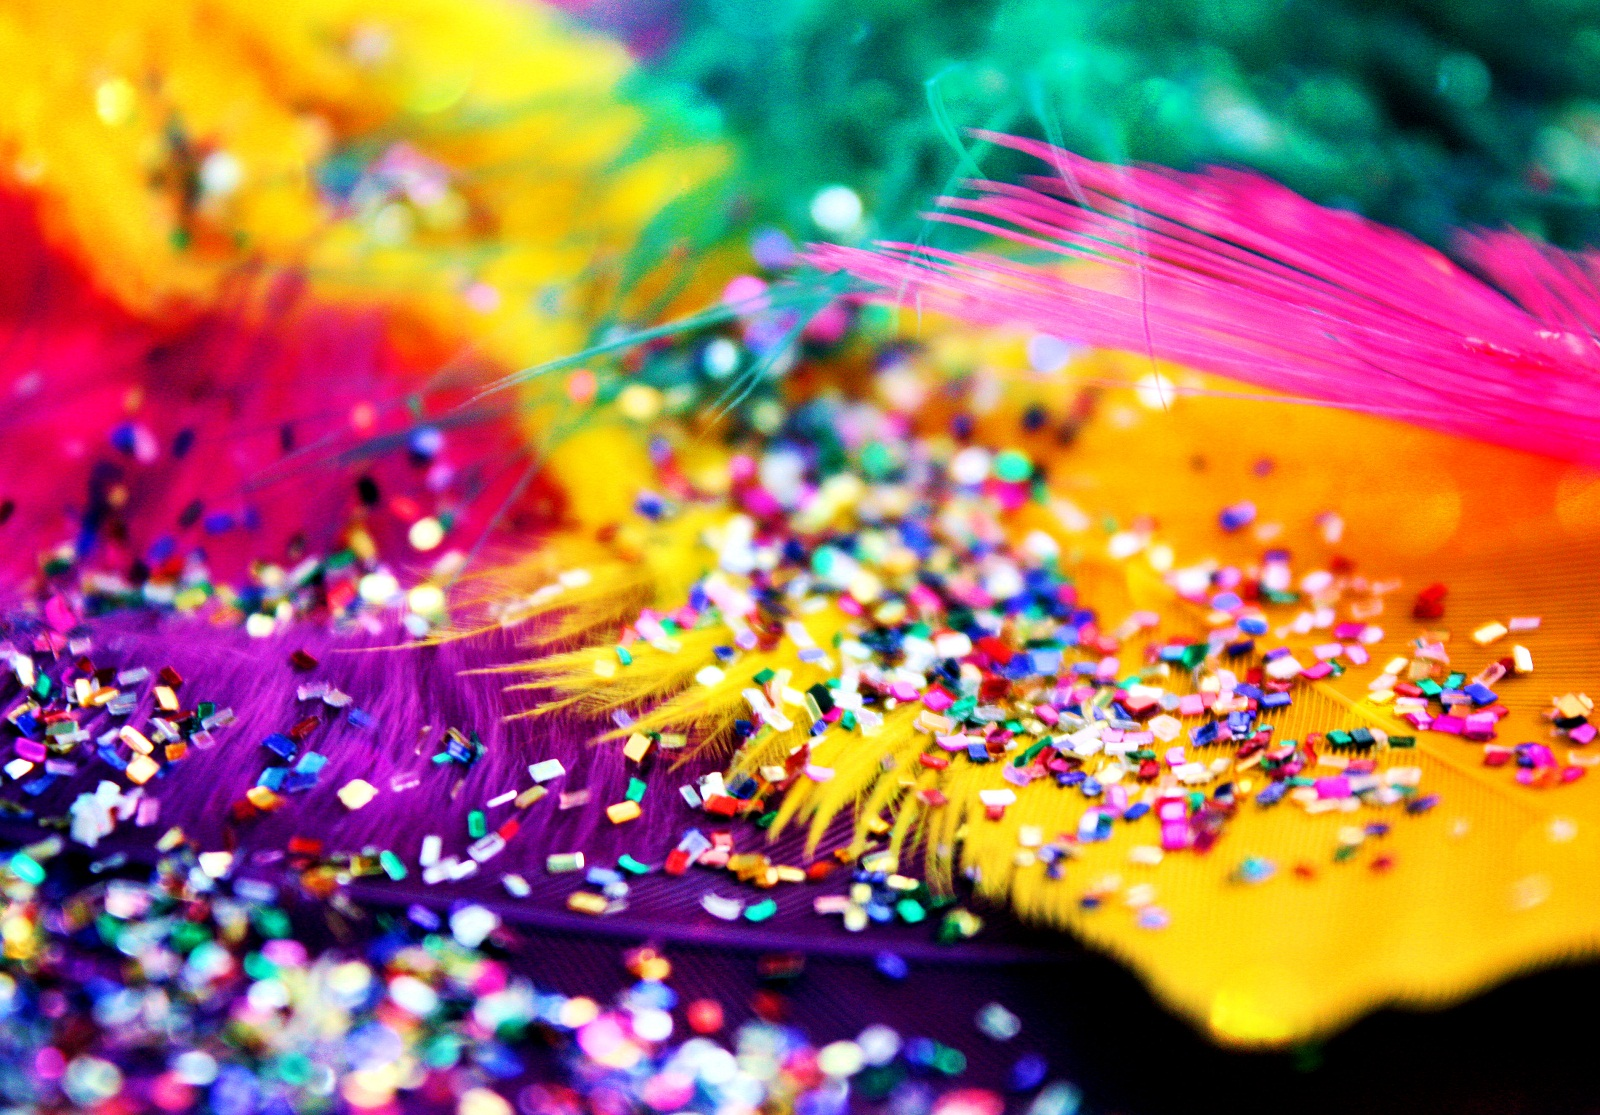 Abstract Beautiful Colorful Photography Wallpaper